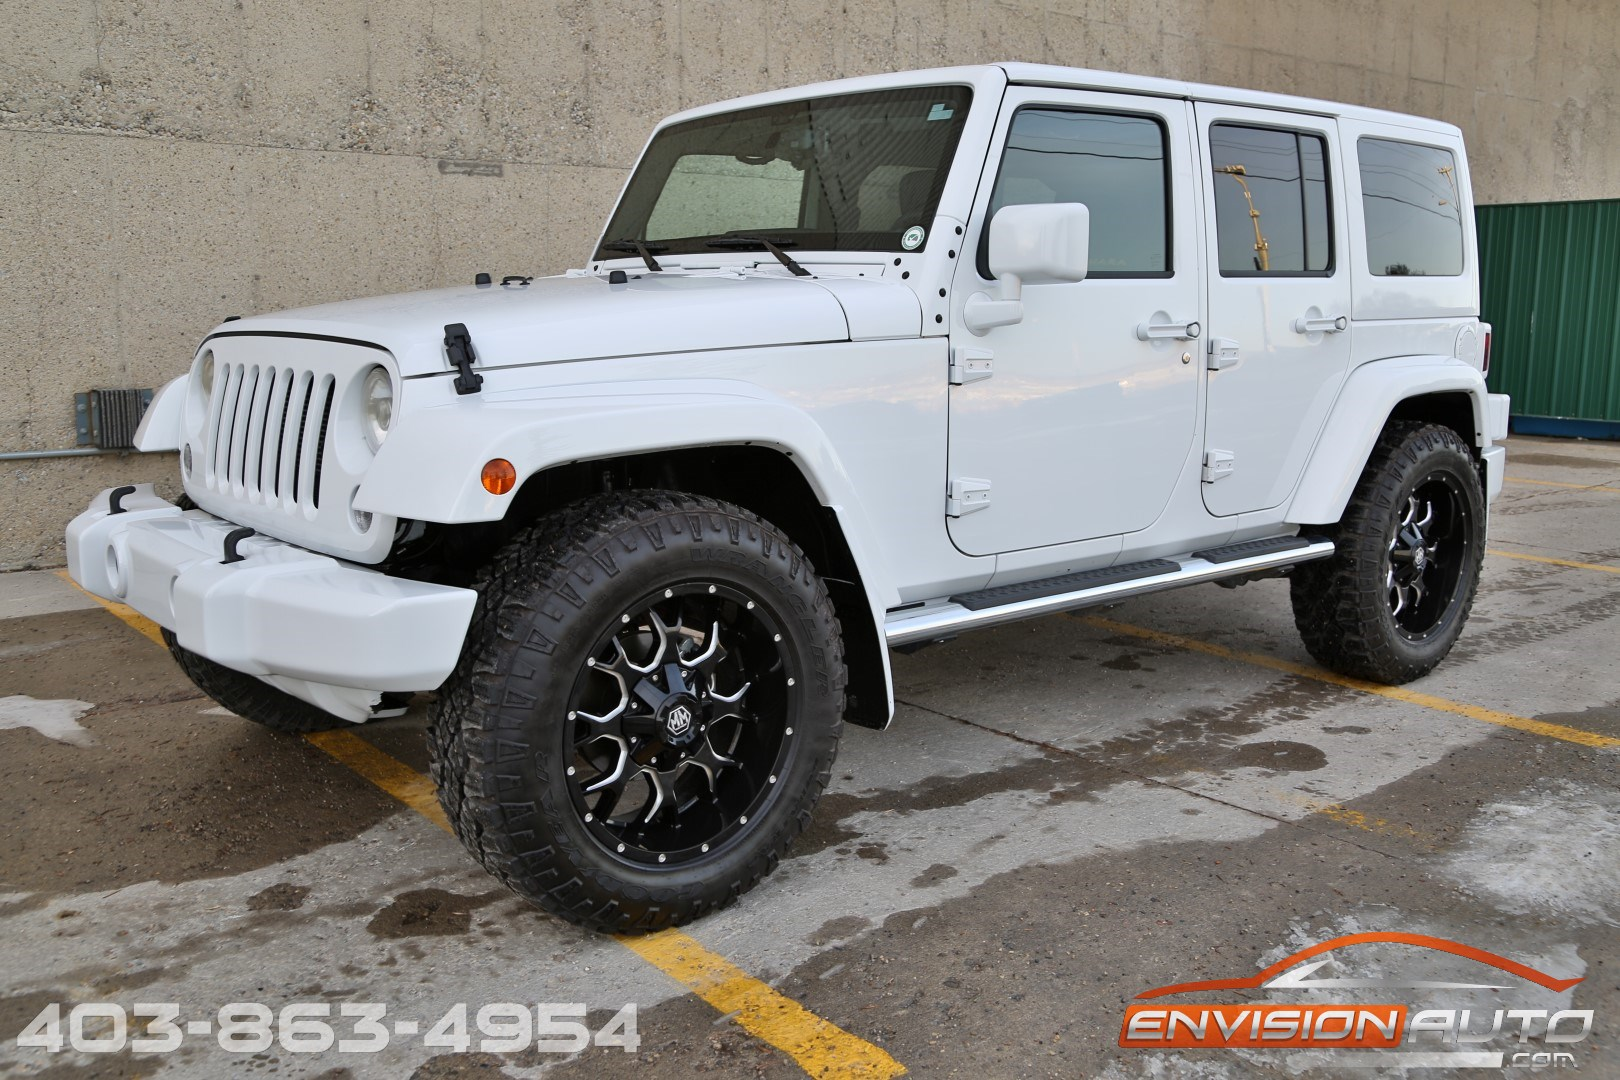 2015 jeep wrangler unlimited sahara 4 x 4 custom show jeep envision auto. Black Bedroom Furniture Sets. Home Design Ideas